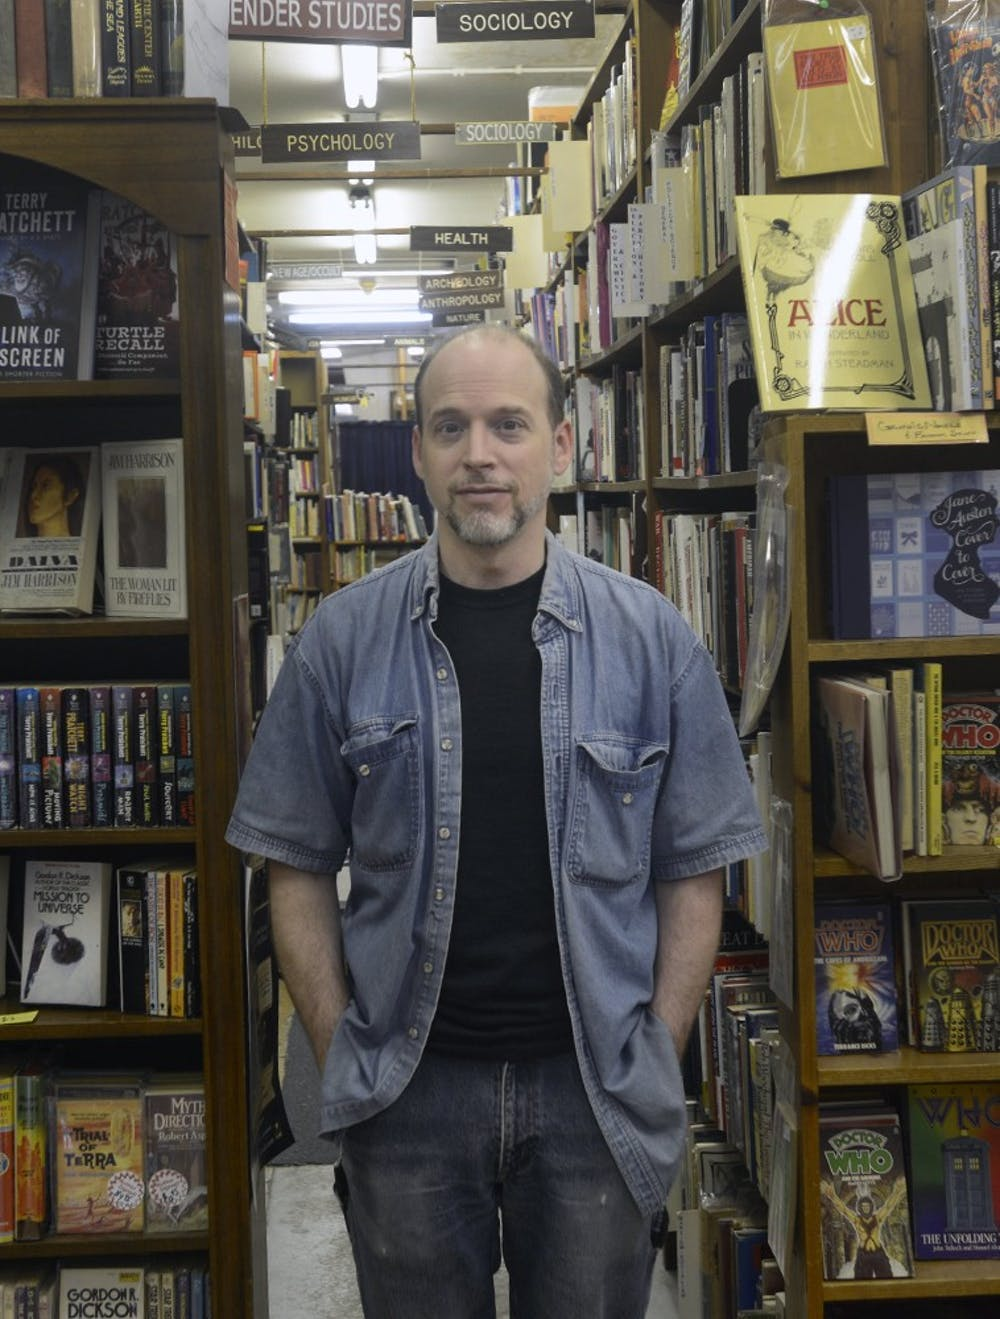 <p>Member of Curious Books for nearly ten years and now manager, Mark Wojcik, says he's always wanted to work in a smaller, more personal book shop and took the opportunity as soon as he got it June 5th, 2015 at Curious Books. Wyatt Giangrande/State News</p>